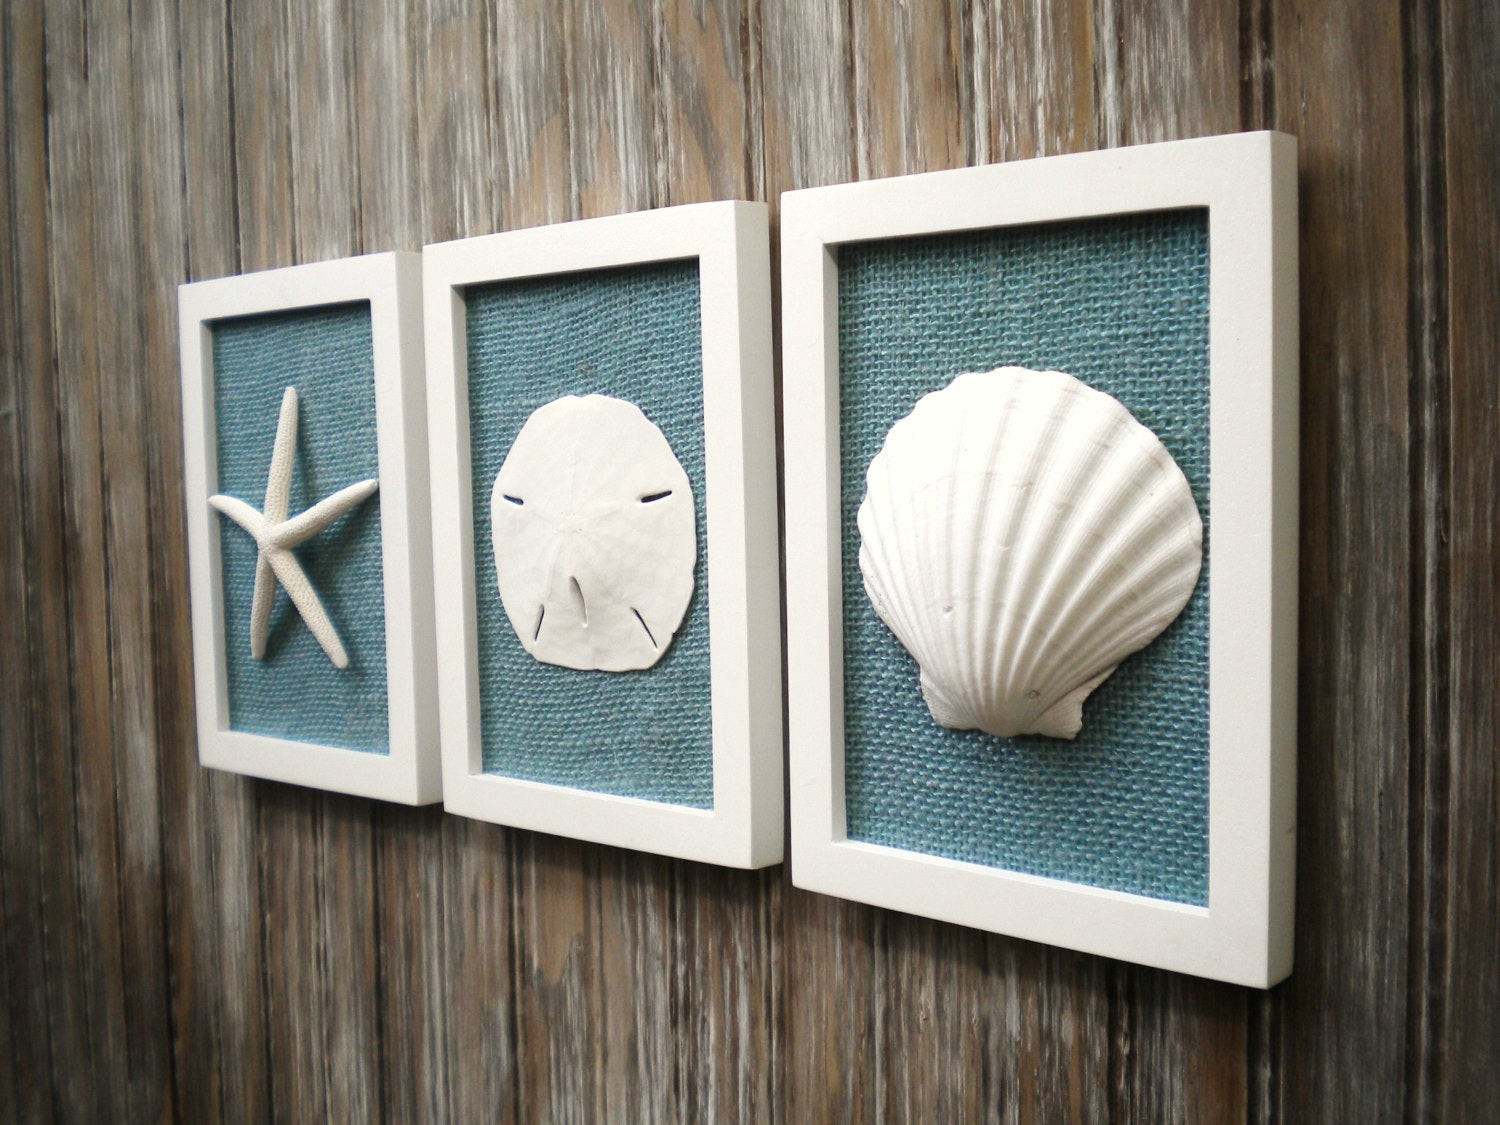 Best ideas about Coastal Wall Art . Save or Pin Cottage Chic Set of Beach Decor Wall Art Nautical Decor Now.